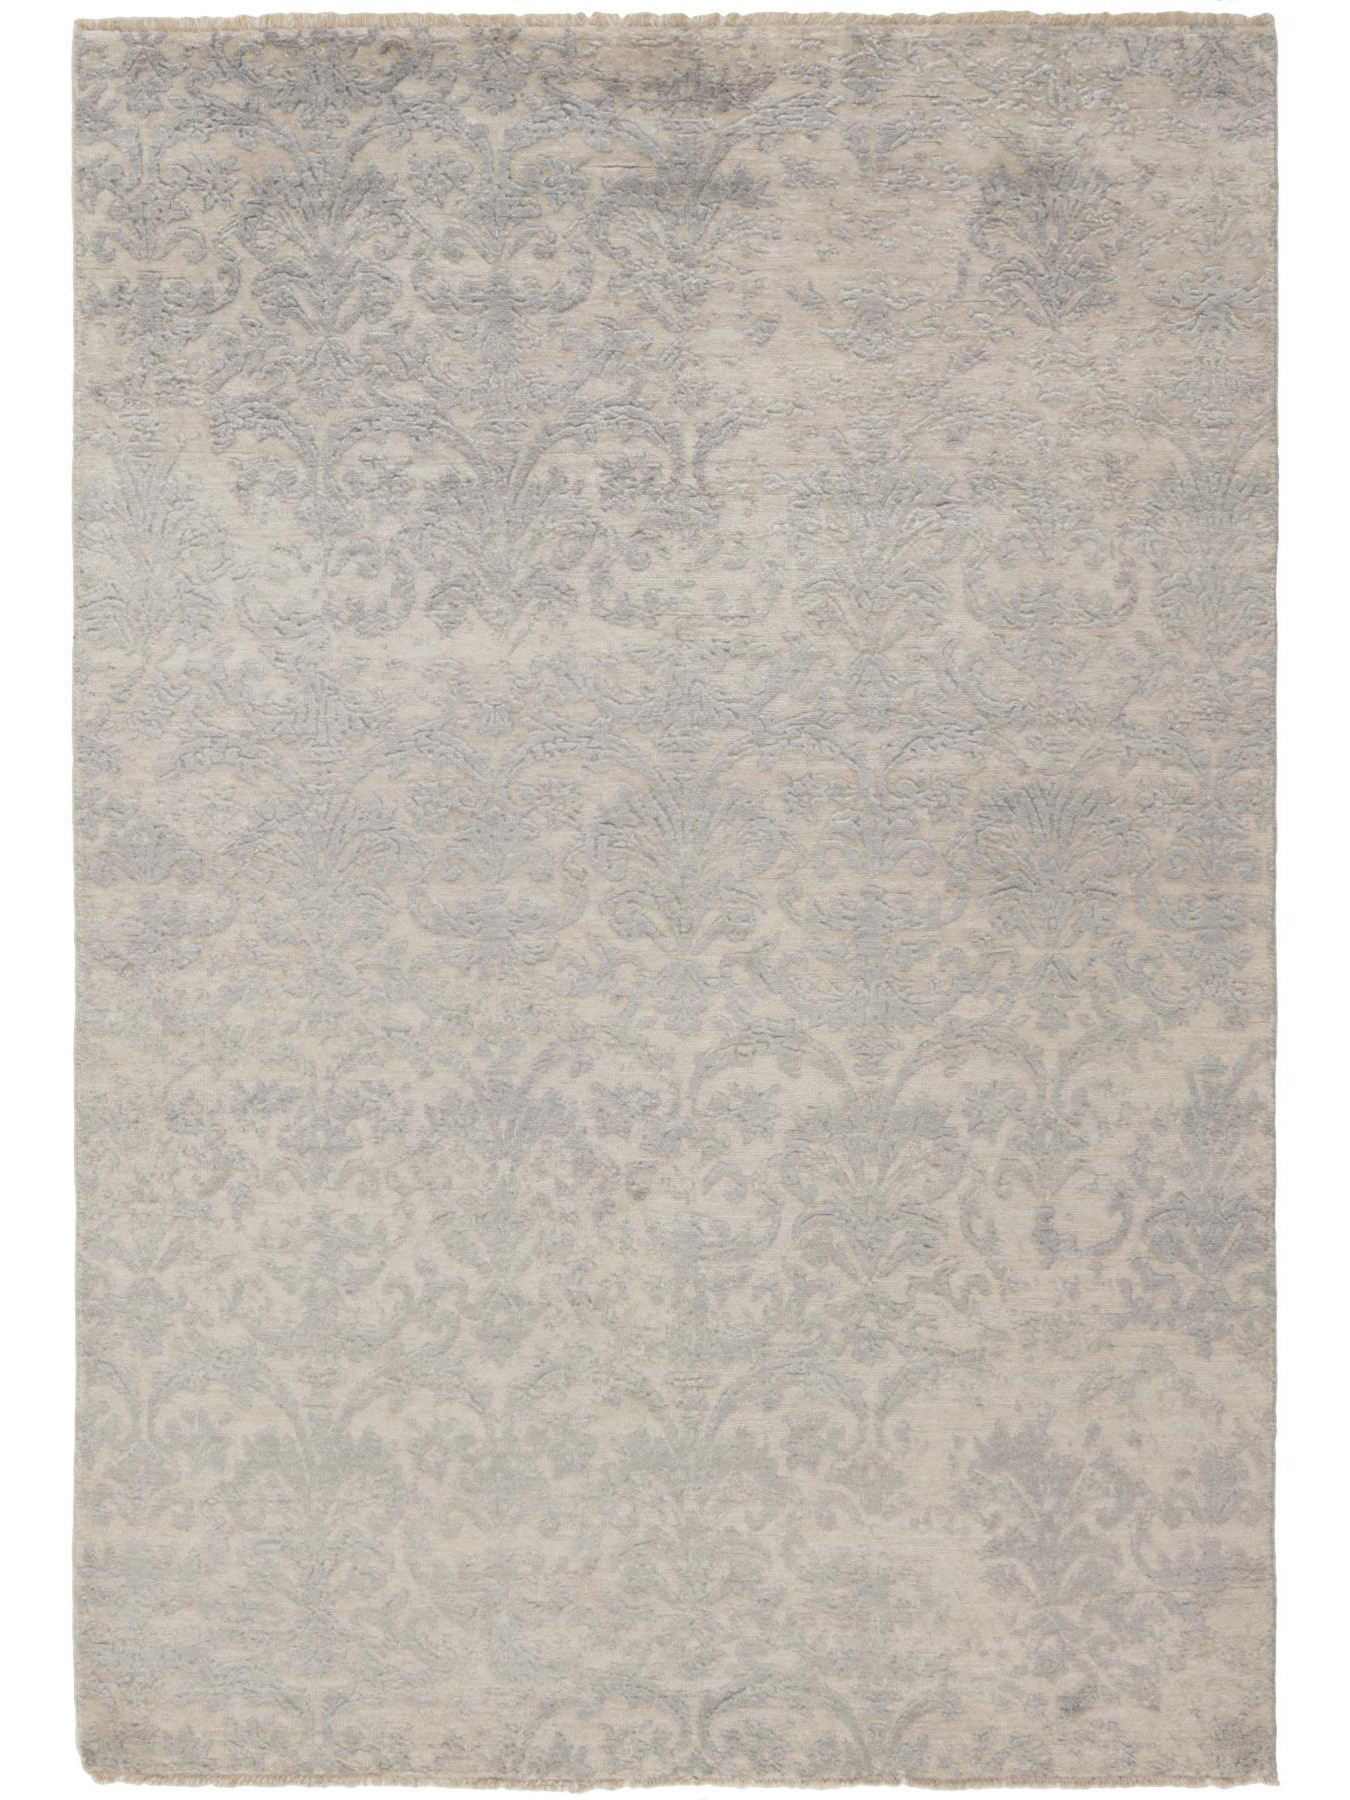 Luxury tapijten - Damask-AL-2H HB-104/B-14